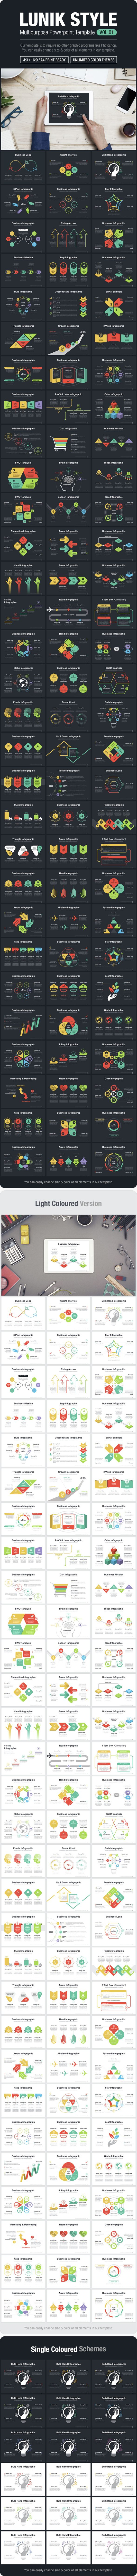 Lunik Style - Multipurpose PowerPoint Template. Download here…